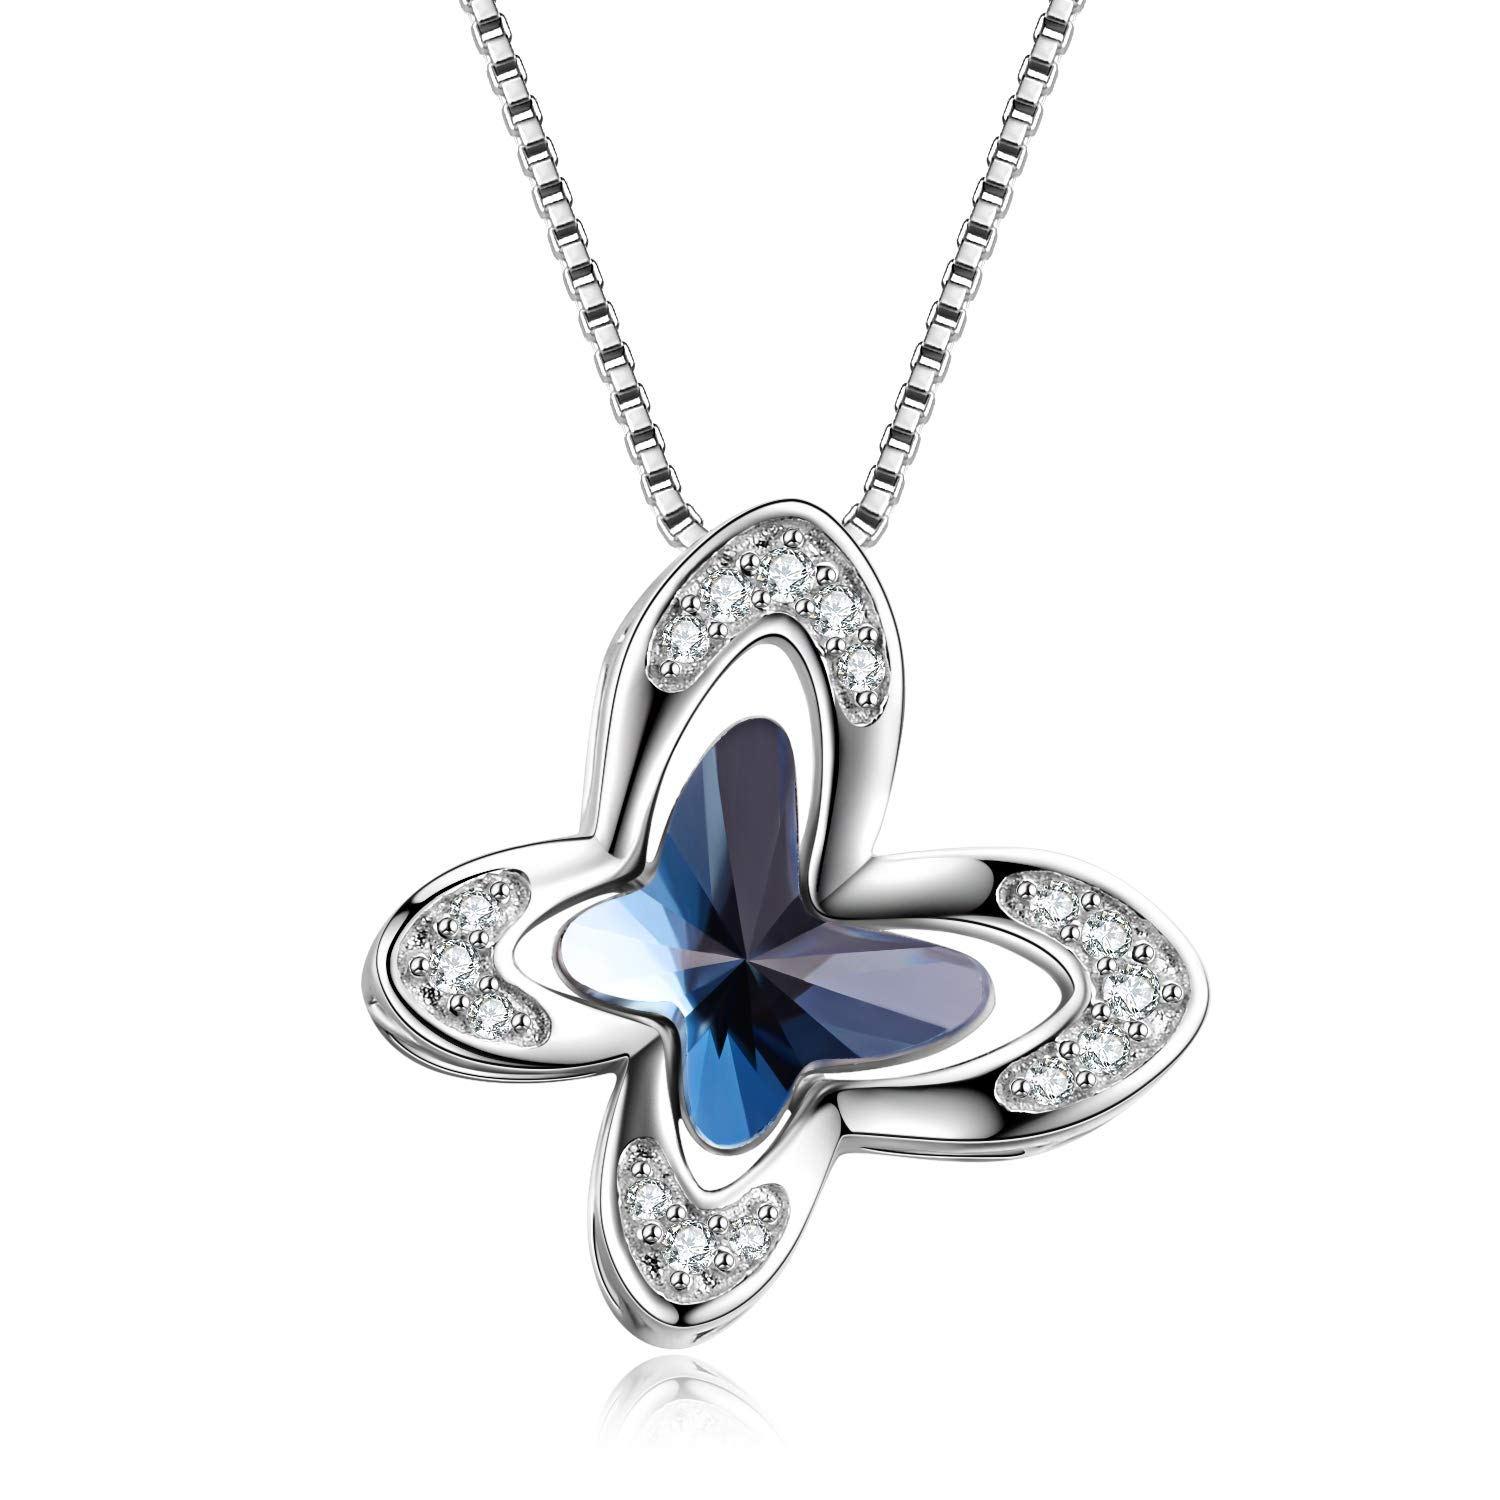 Sterling Silver Butterfly Necklace for Women, Blue Butterfly Pendant Made with Crystal from Swarovski, Dreamy Morpho Helena Butterfly Jewelry Gifts for Anniversary Birthday